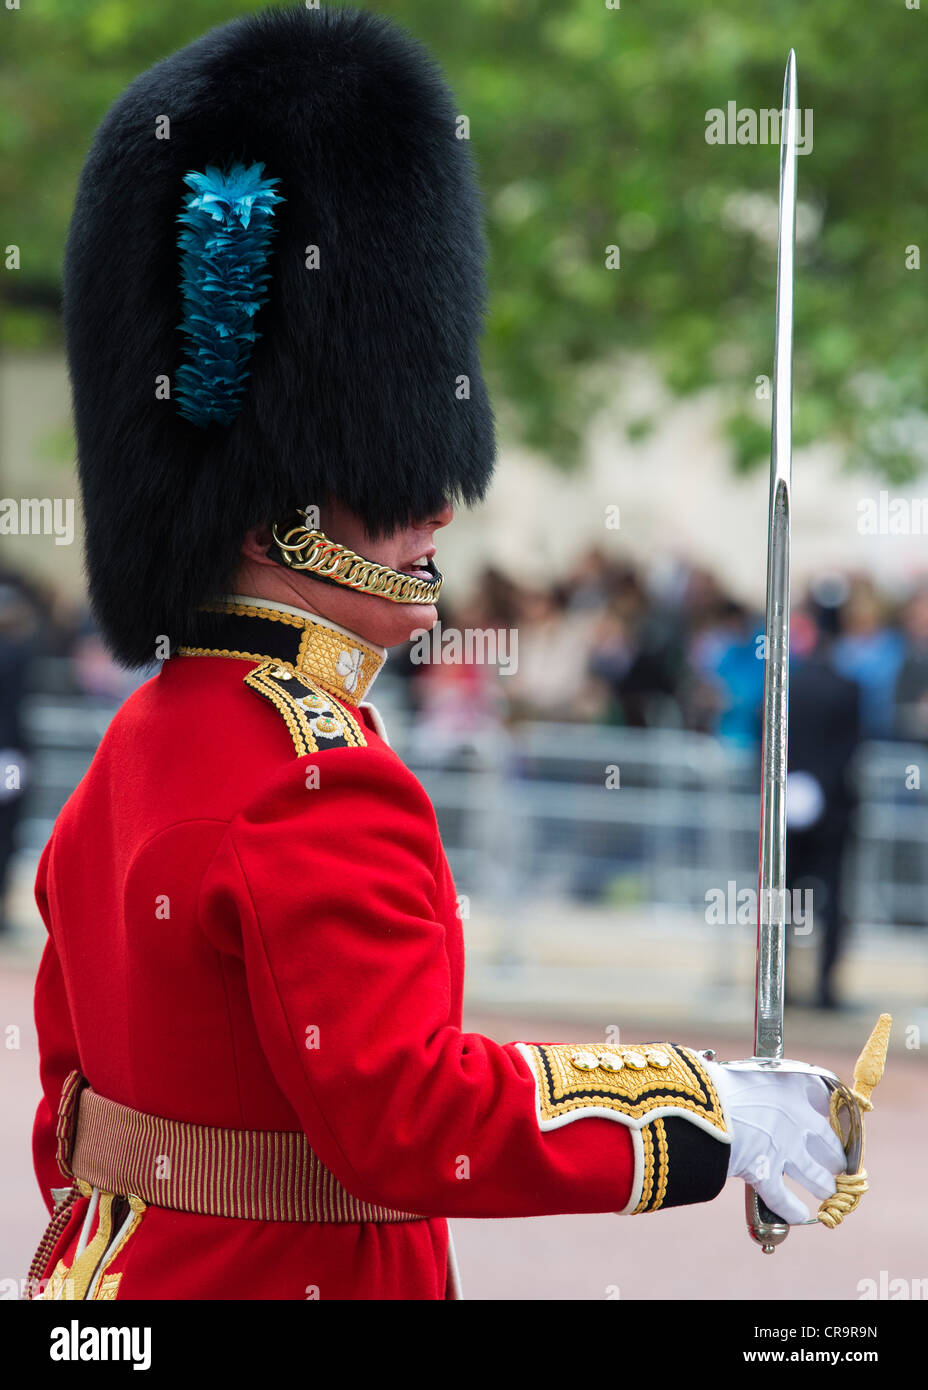 Guardsmen in the Mall for Trooping The Colour to celebrate The Queen's Birthday. The Mall, London, UK. - Stock Image